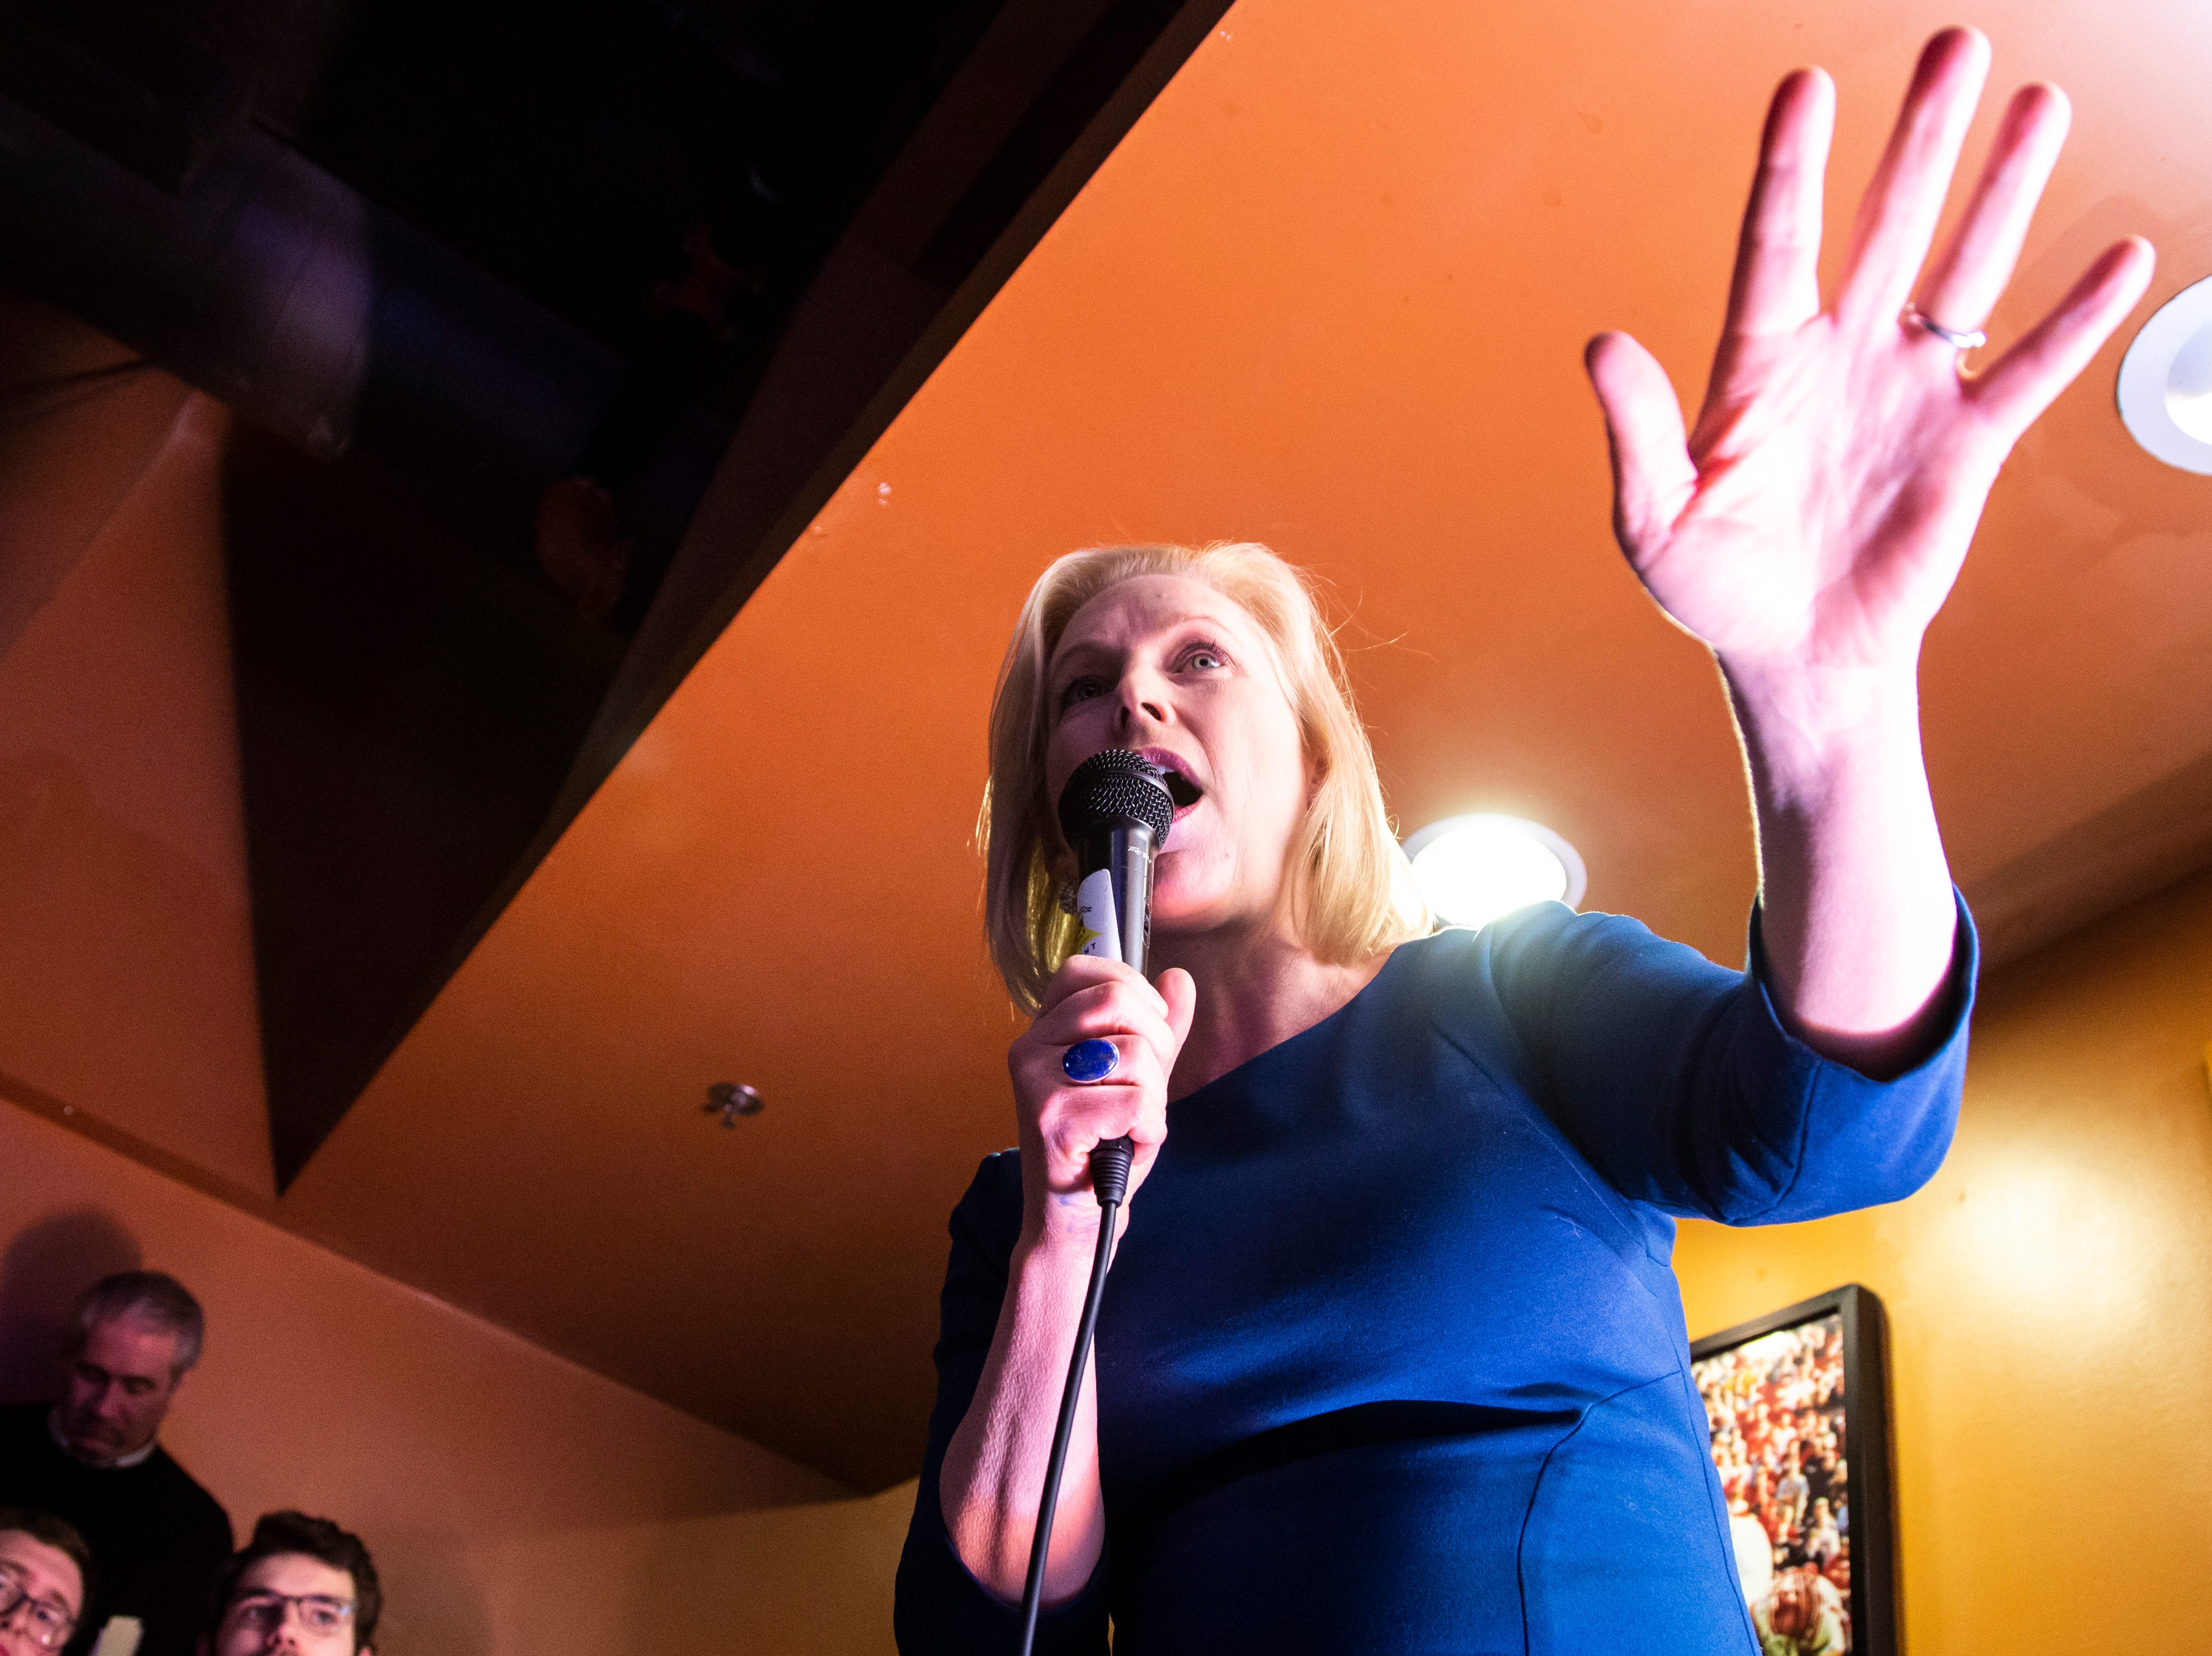 U.S. Sen. Kirsten Gillibrand, D-NY, speaks during a campaign event on Monday, Feb. 18, 2019 at The Airliner in Iowa City, Iowa.